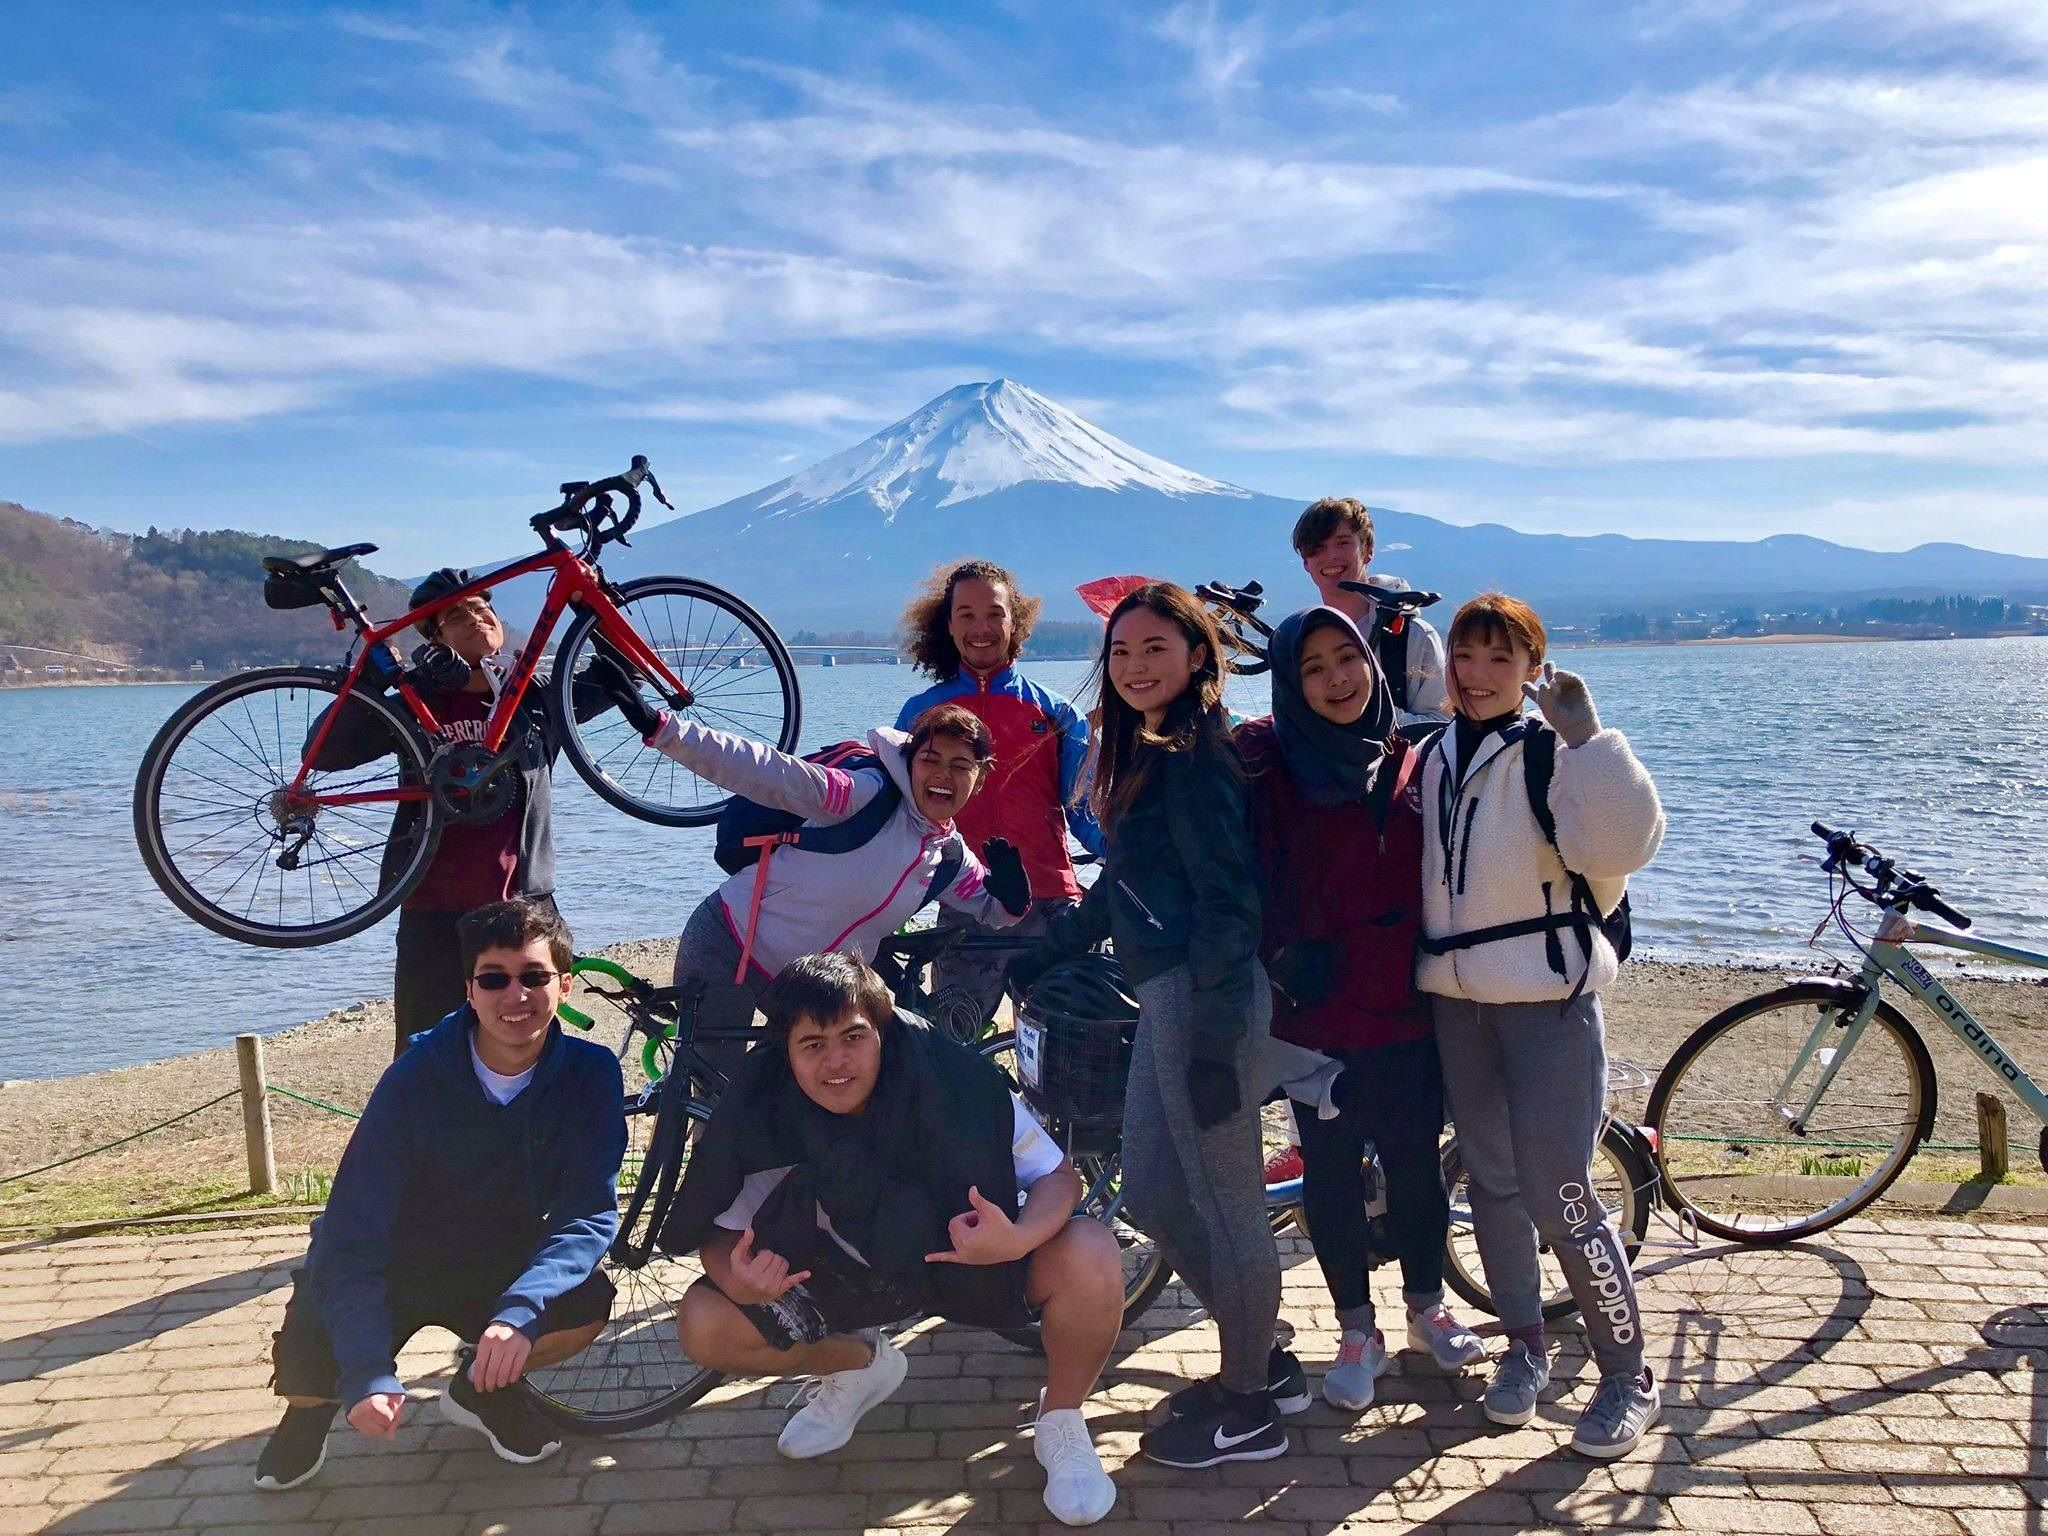 Temple University Japan Bike Club students pose together in front of Mt. Fugi.